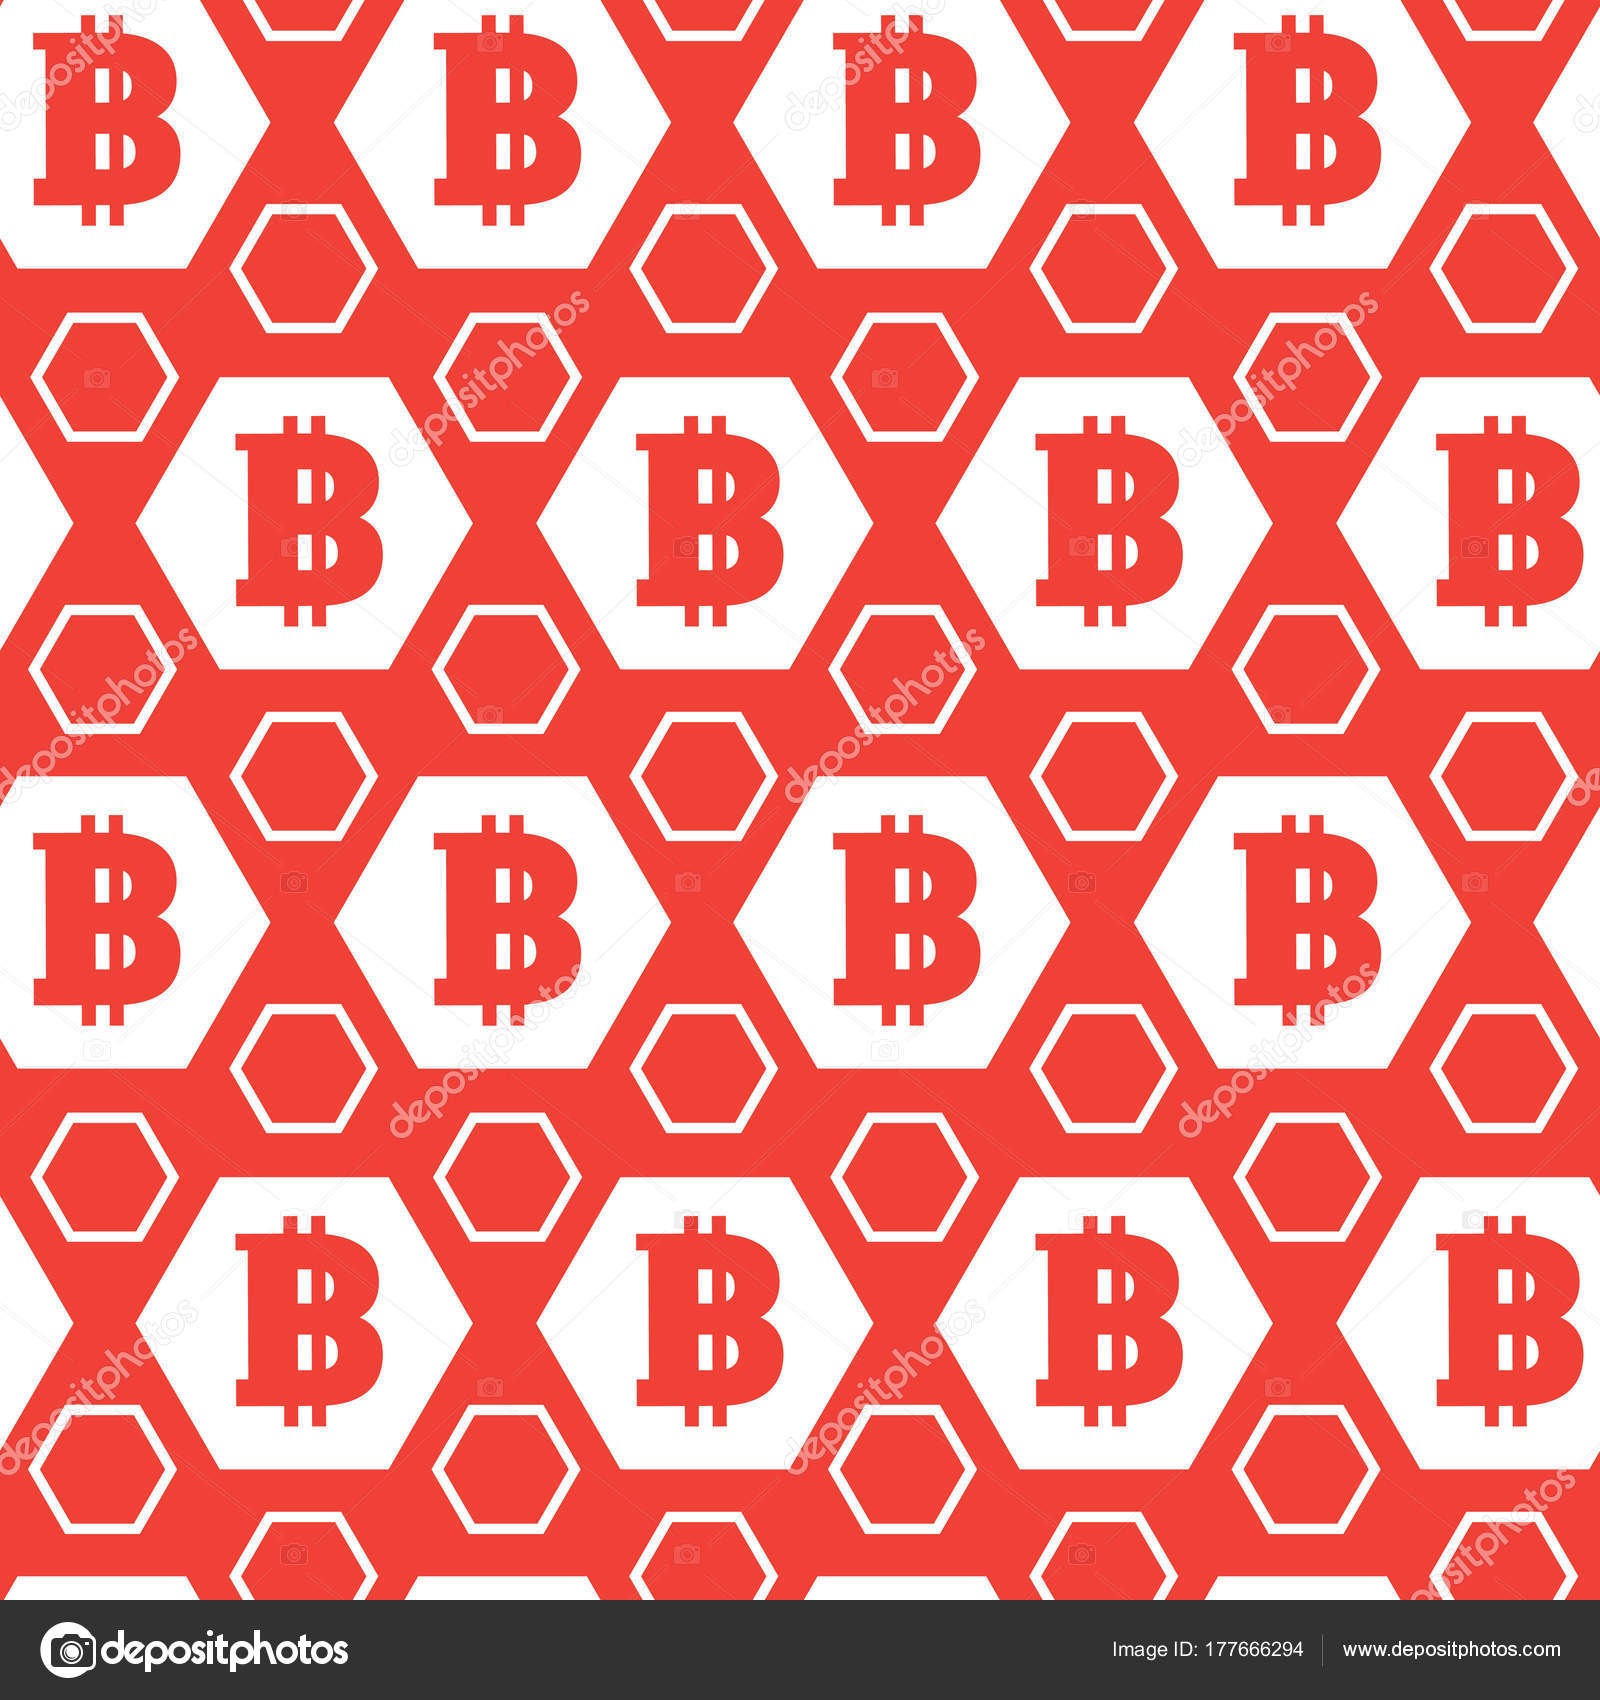 Simple Seamless Pattern Bitcoins Signs Red Background Digital